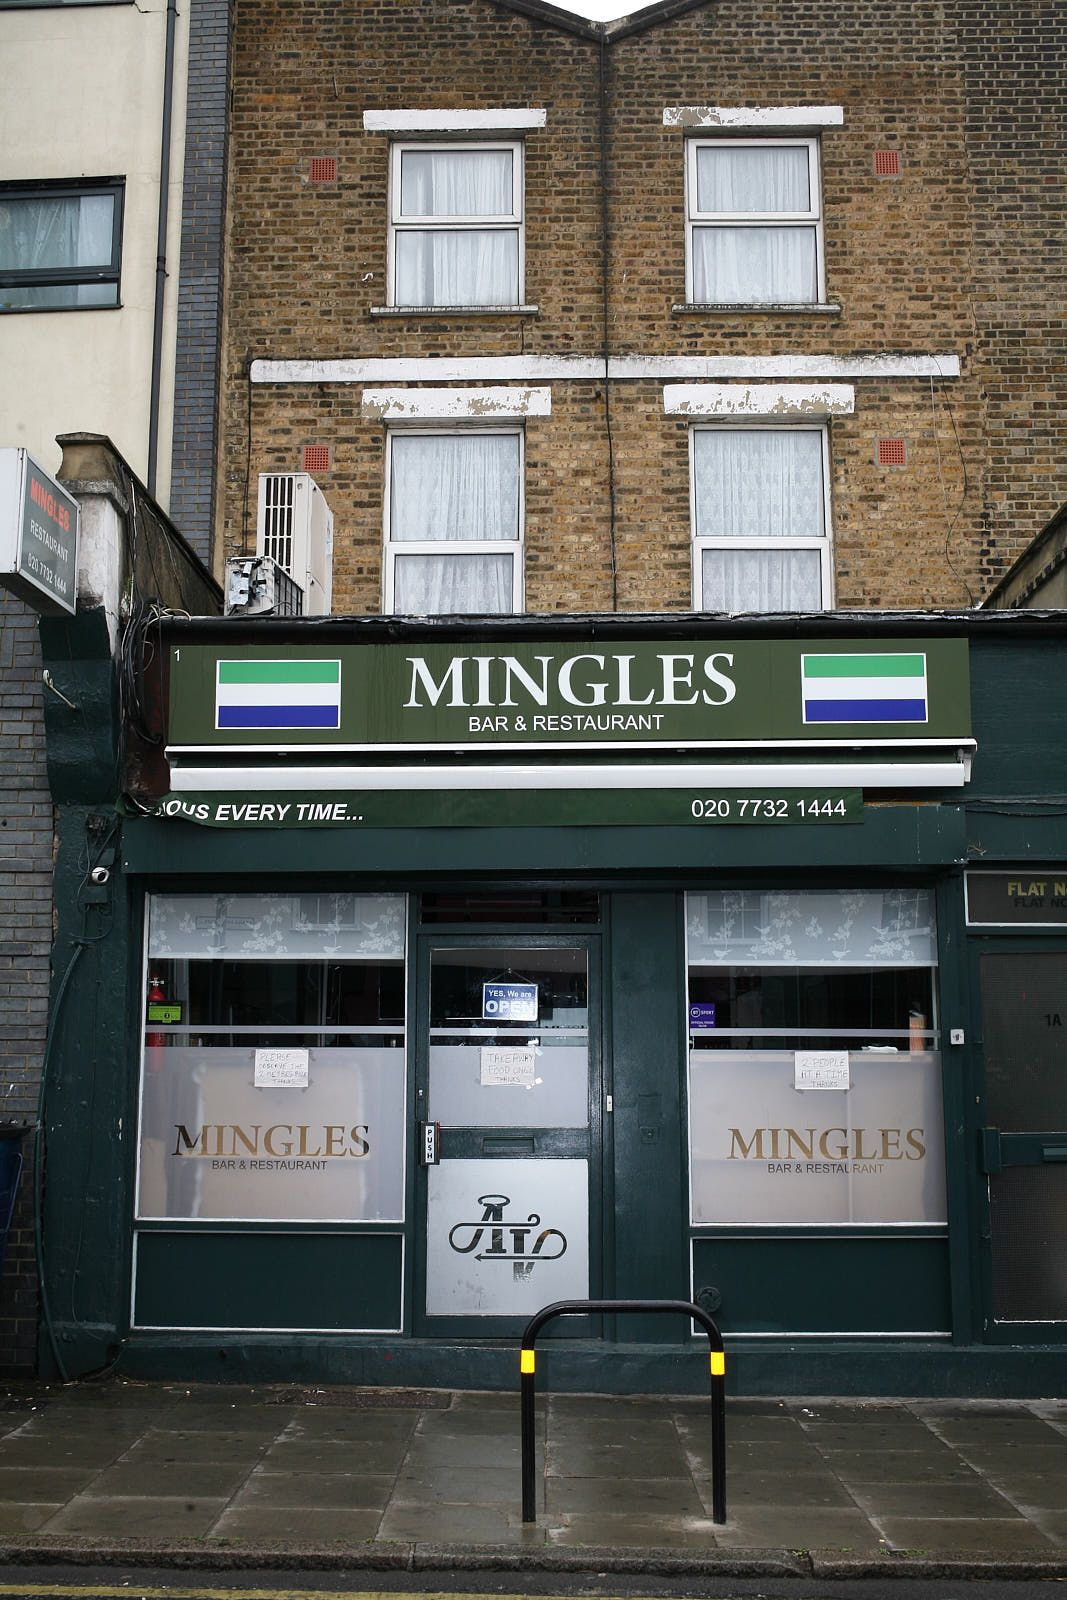 Sierra Leonean restaurant and bar, Mingles, on Old Kent Road